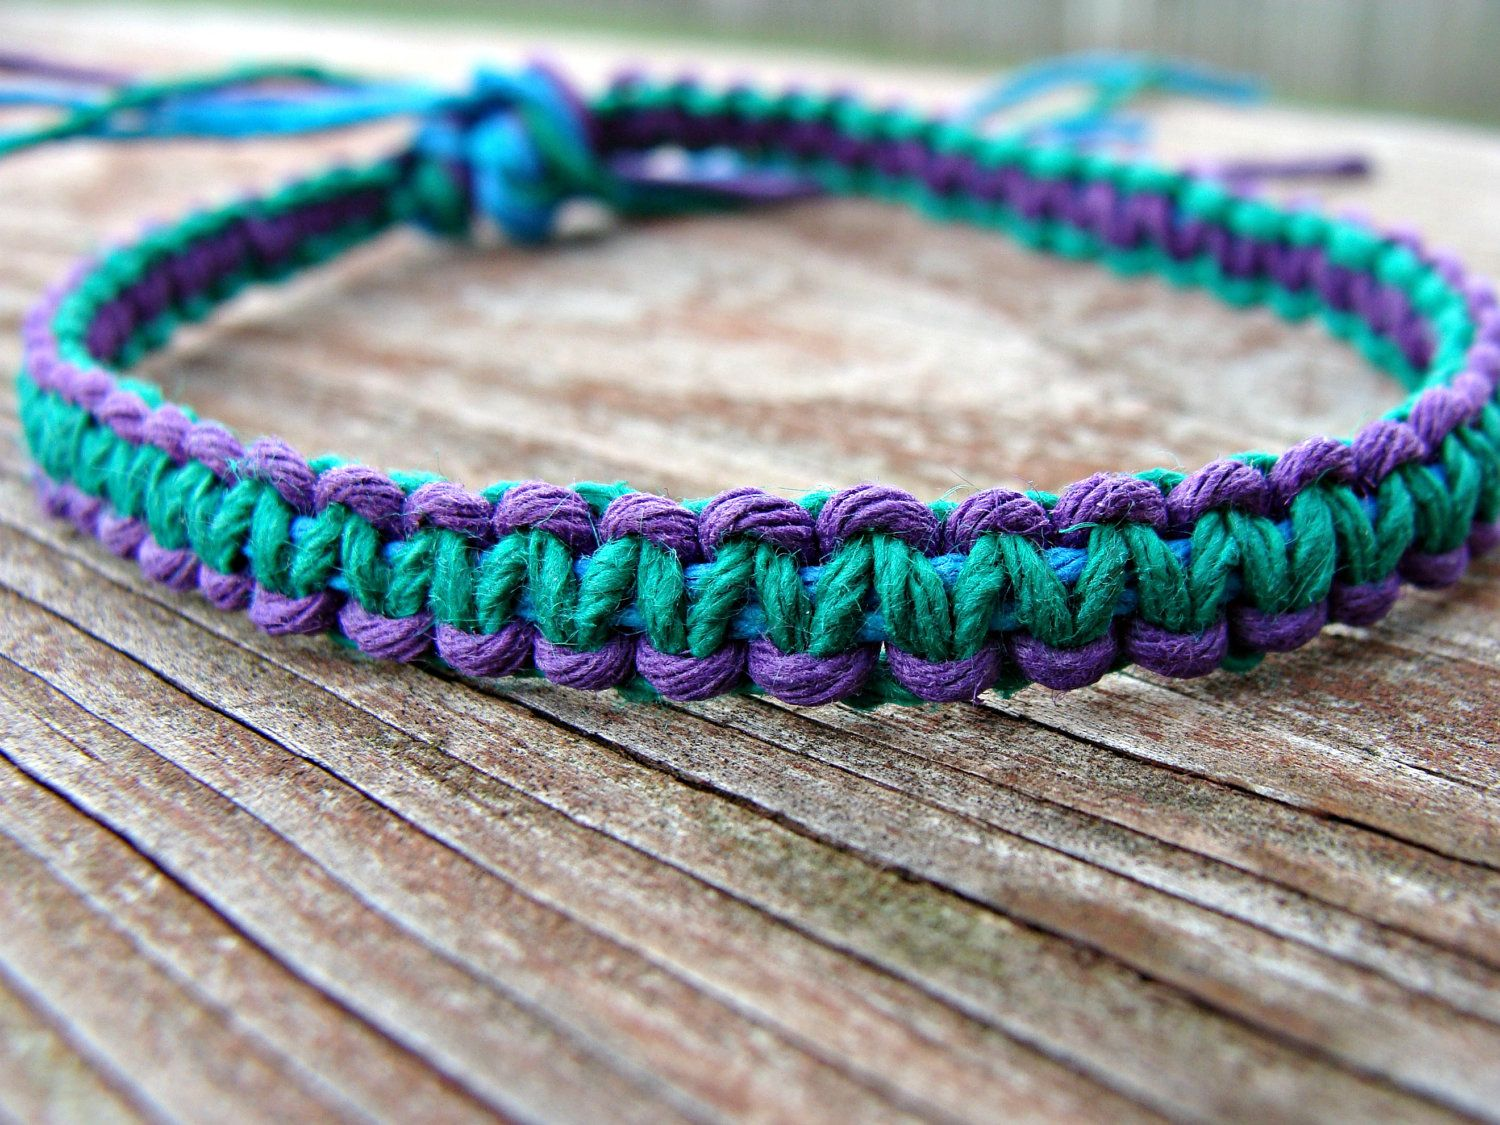 Hemp Bracelet Patterns Purple And Blue Green Woven By Hempkitty On Etsy